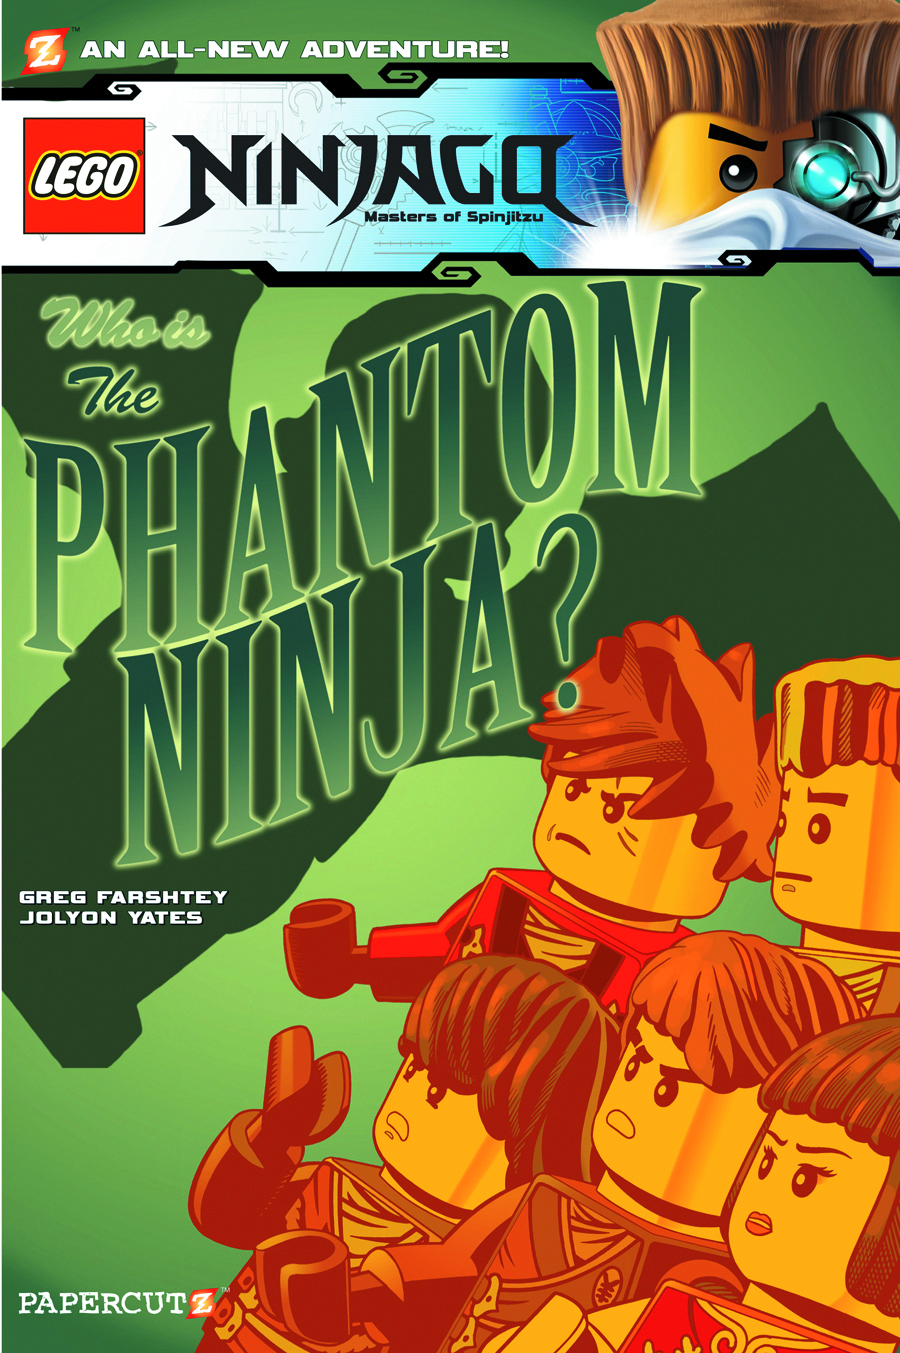 NINJAGO HC VOL 10 PHANTOM NINJA